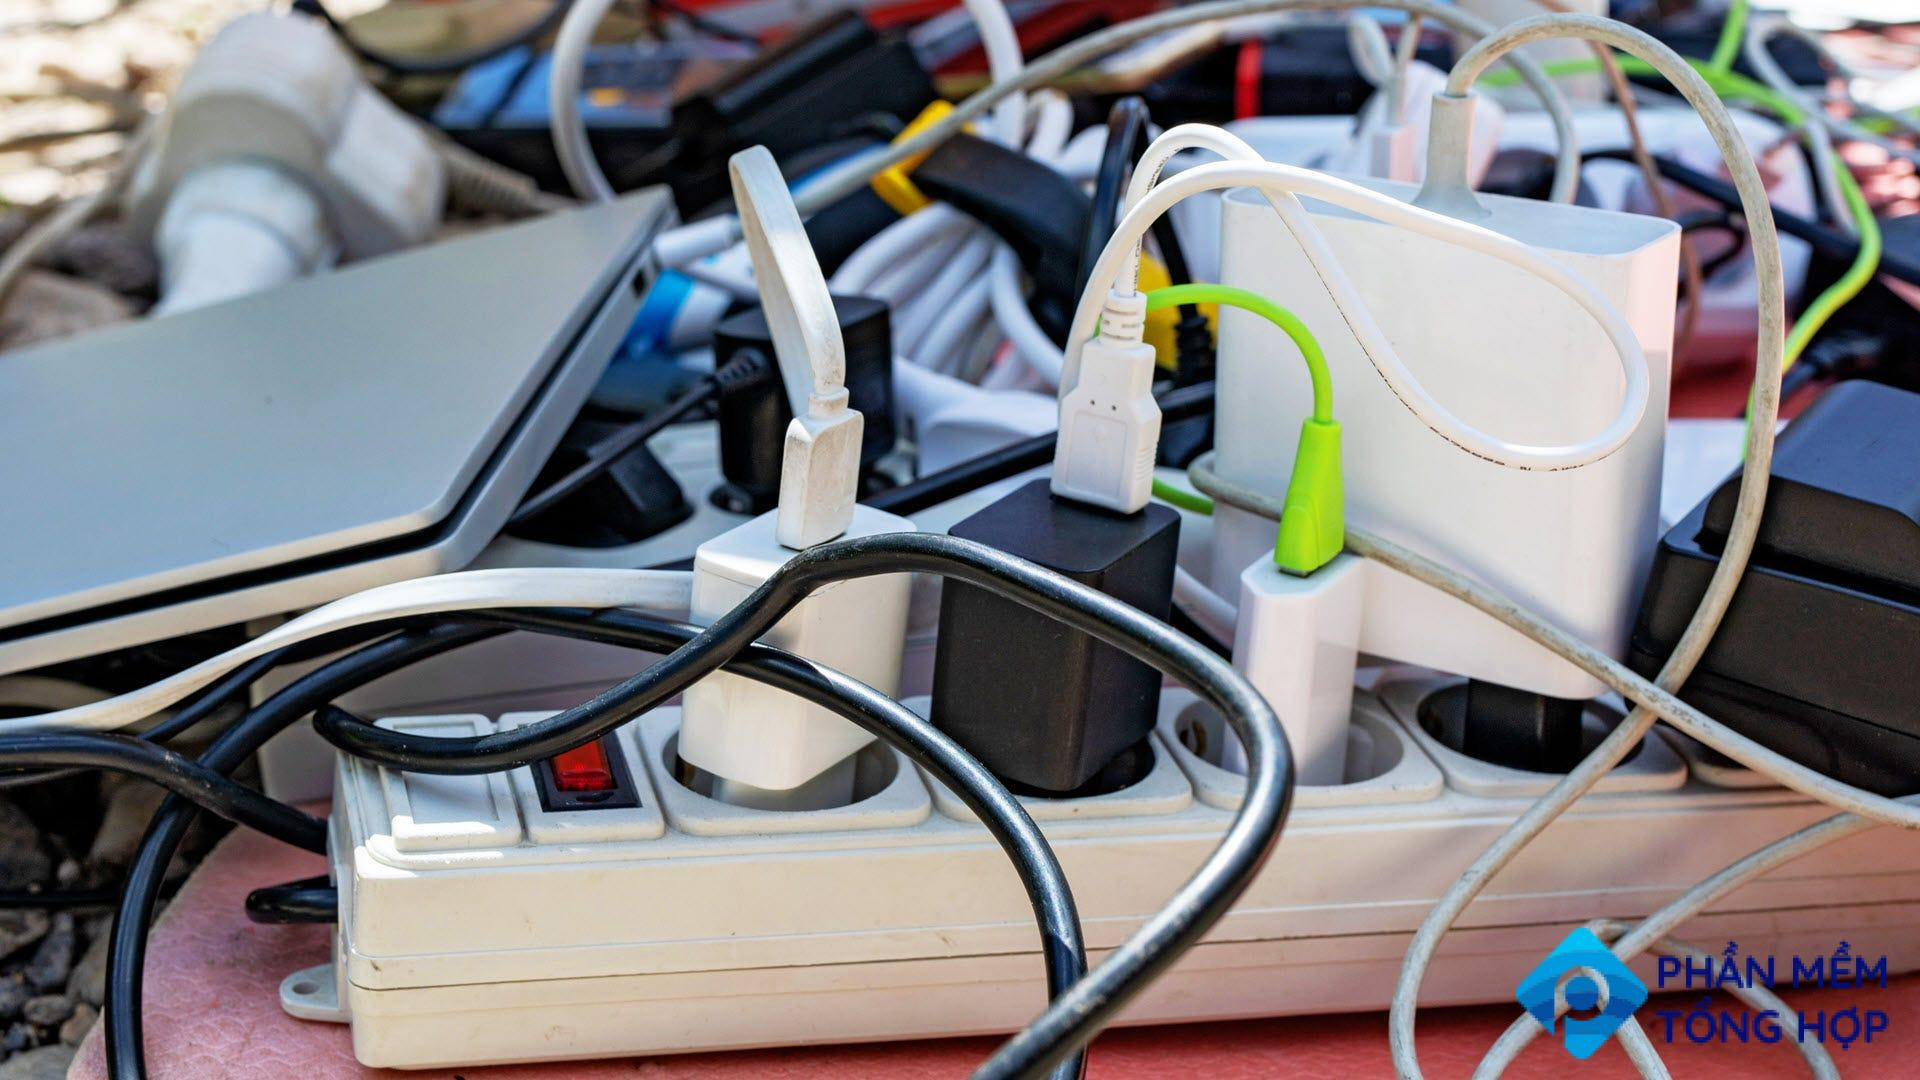 A tangled mess of wires and electronics